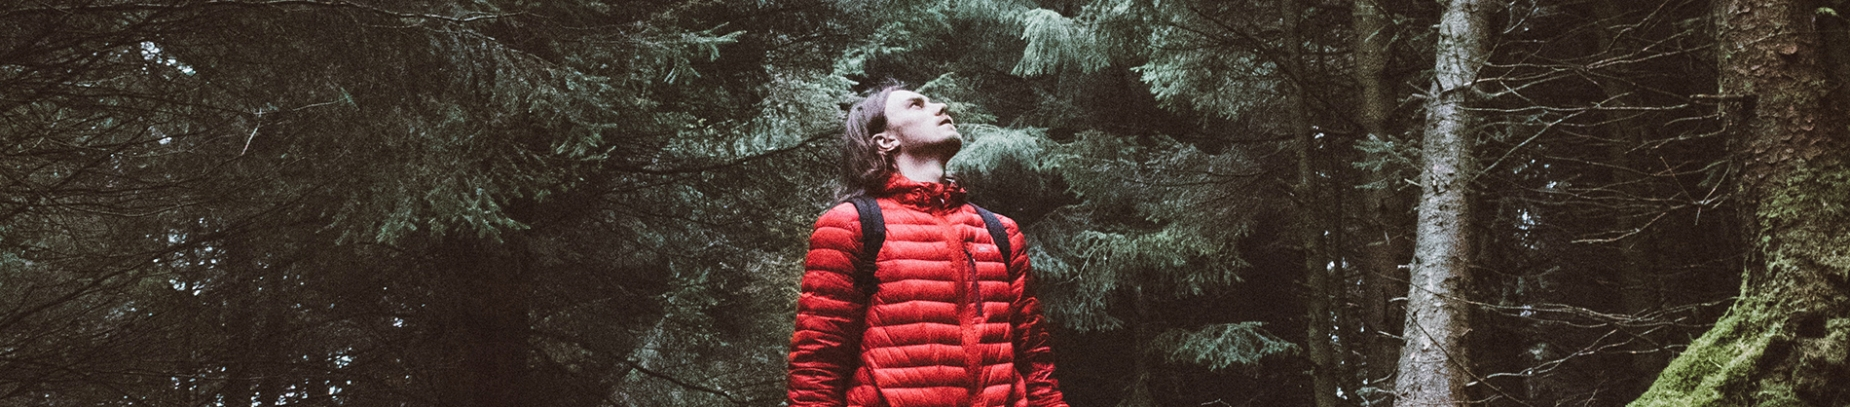 A man in a red coat stood in a forest looking up to the sky